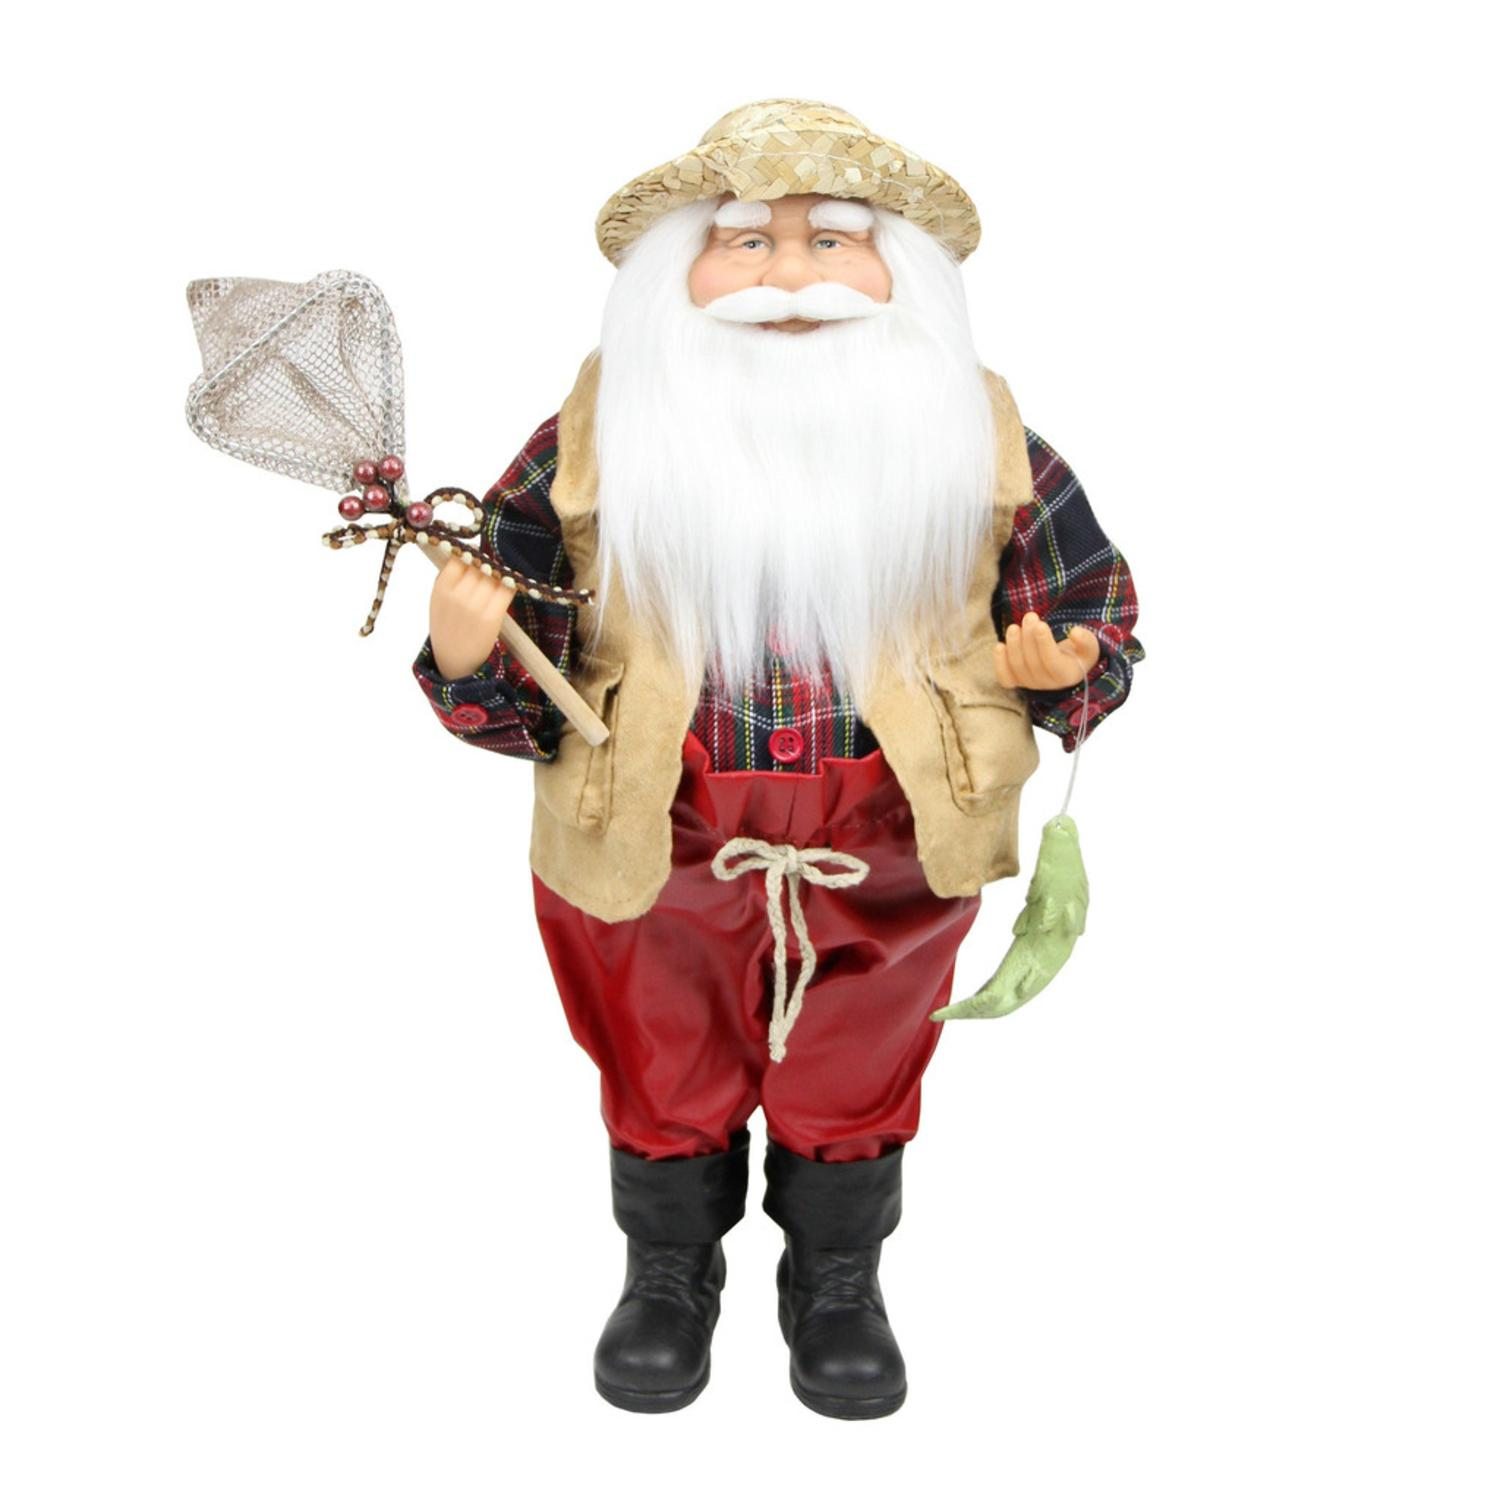 ''18'''' Rustic Lodge Fisherman Santa Claus with Net and Fish Christmas Tabletop Decoration''